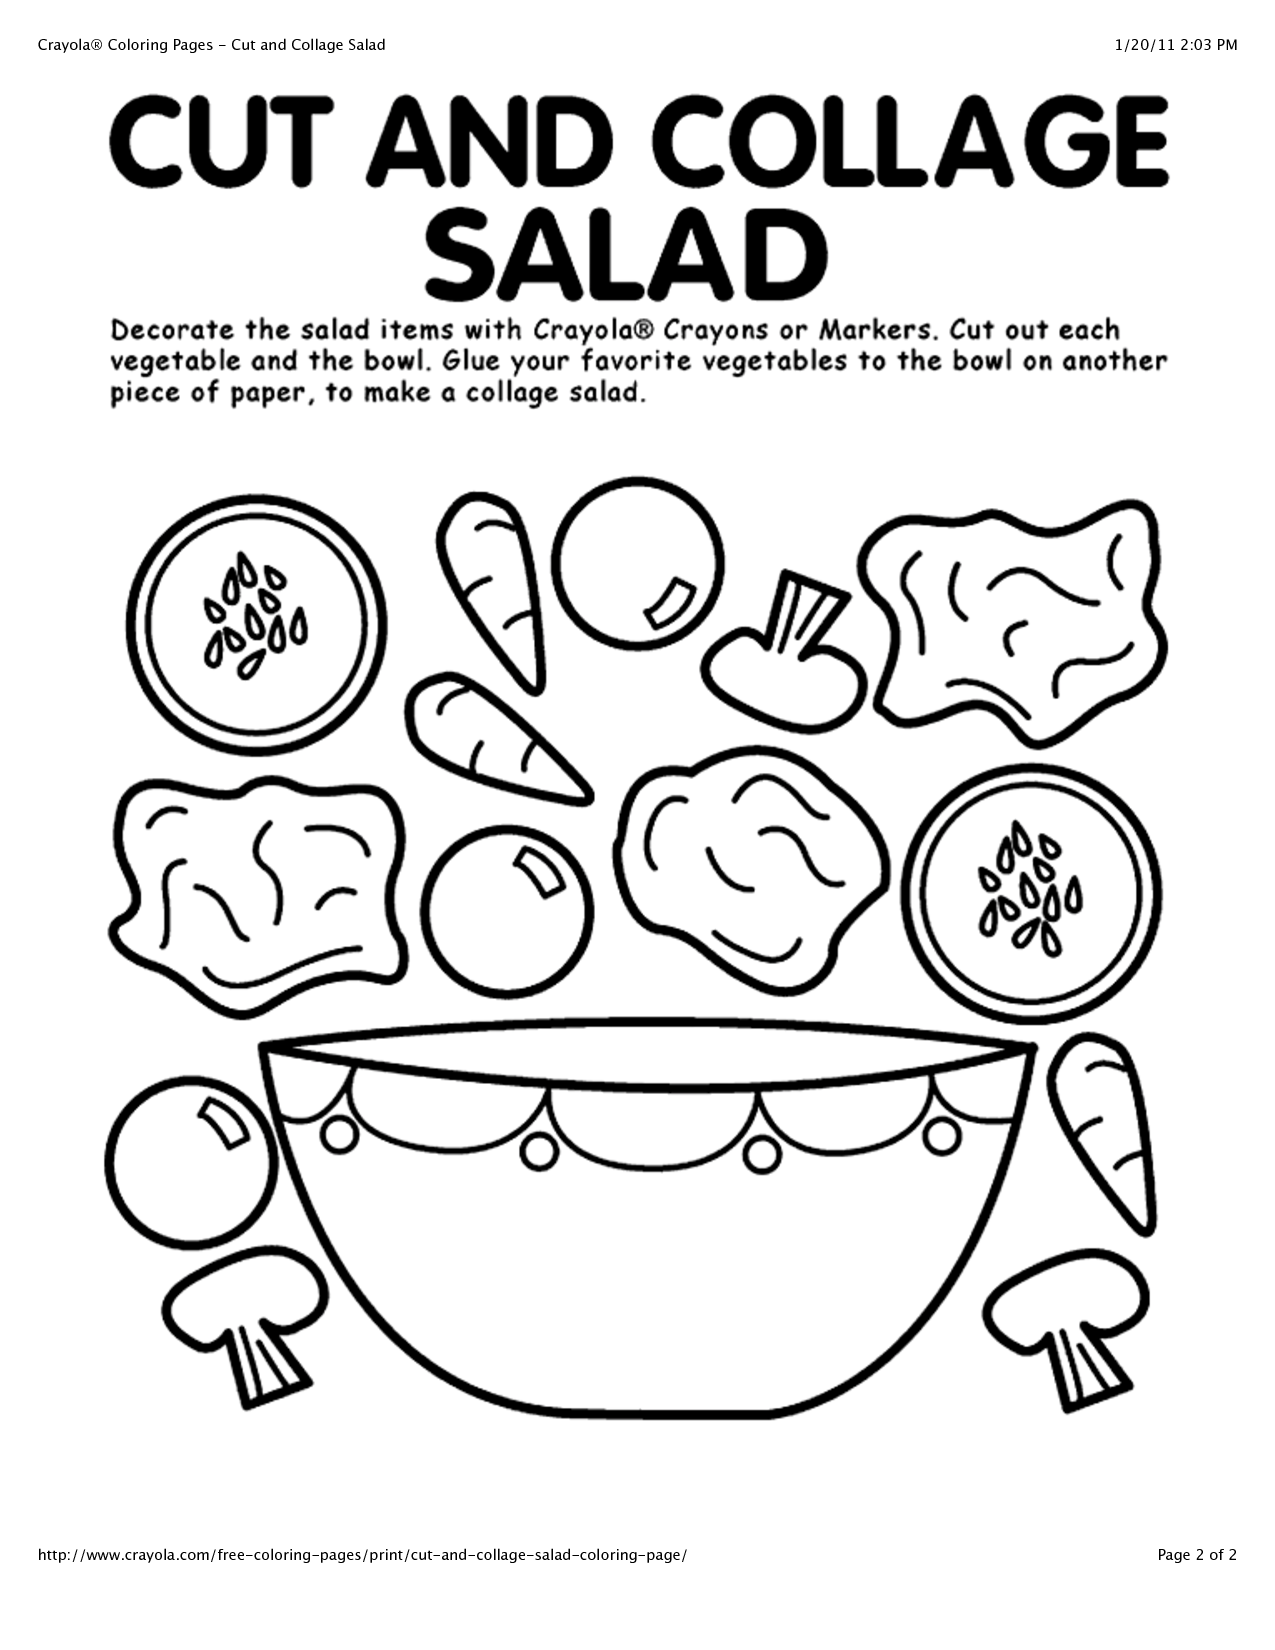 5 food groups coloring pages nutritious food pyramid coloring pages food coloring groups food 5 coloring pages